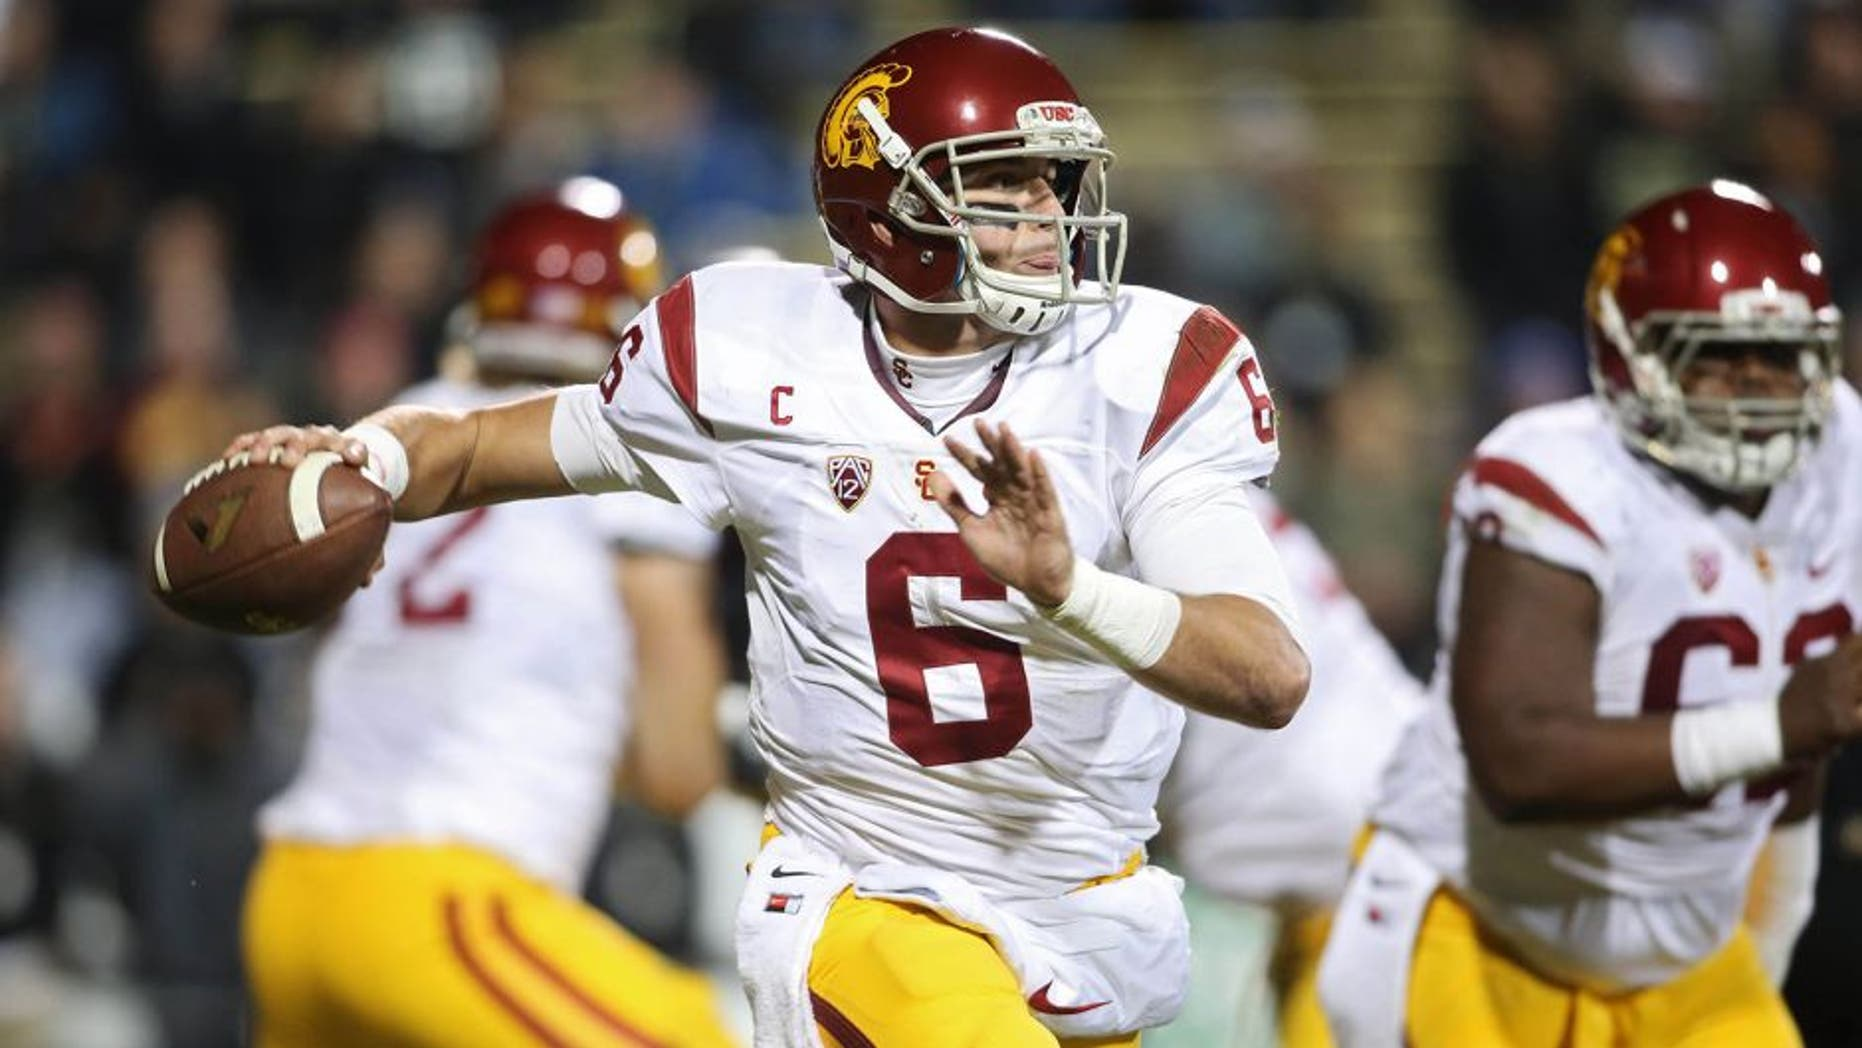 Nov 13, 2015; Boulder, CO, USA; USC Trojans quarterback Cody Kessler (6) looks to pass the ball during the first half against the Colorado Buffaloes at Folsom Field. Mandatory Credit: Chris Humphreys-USA TODAY Sports